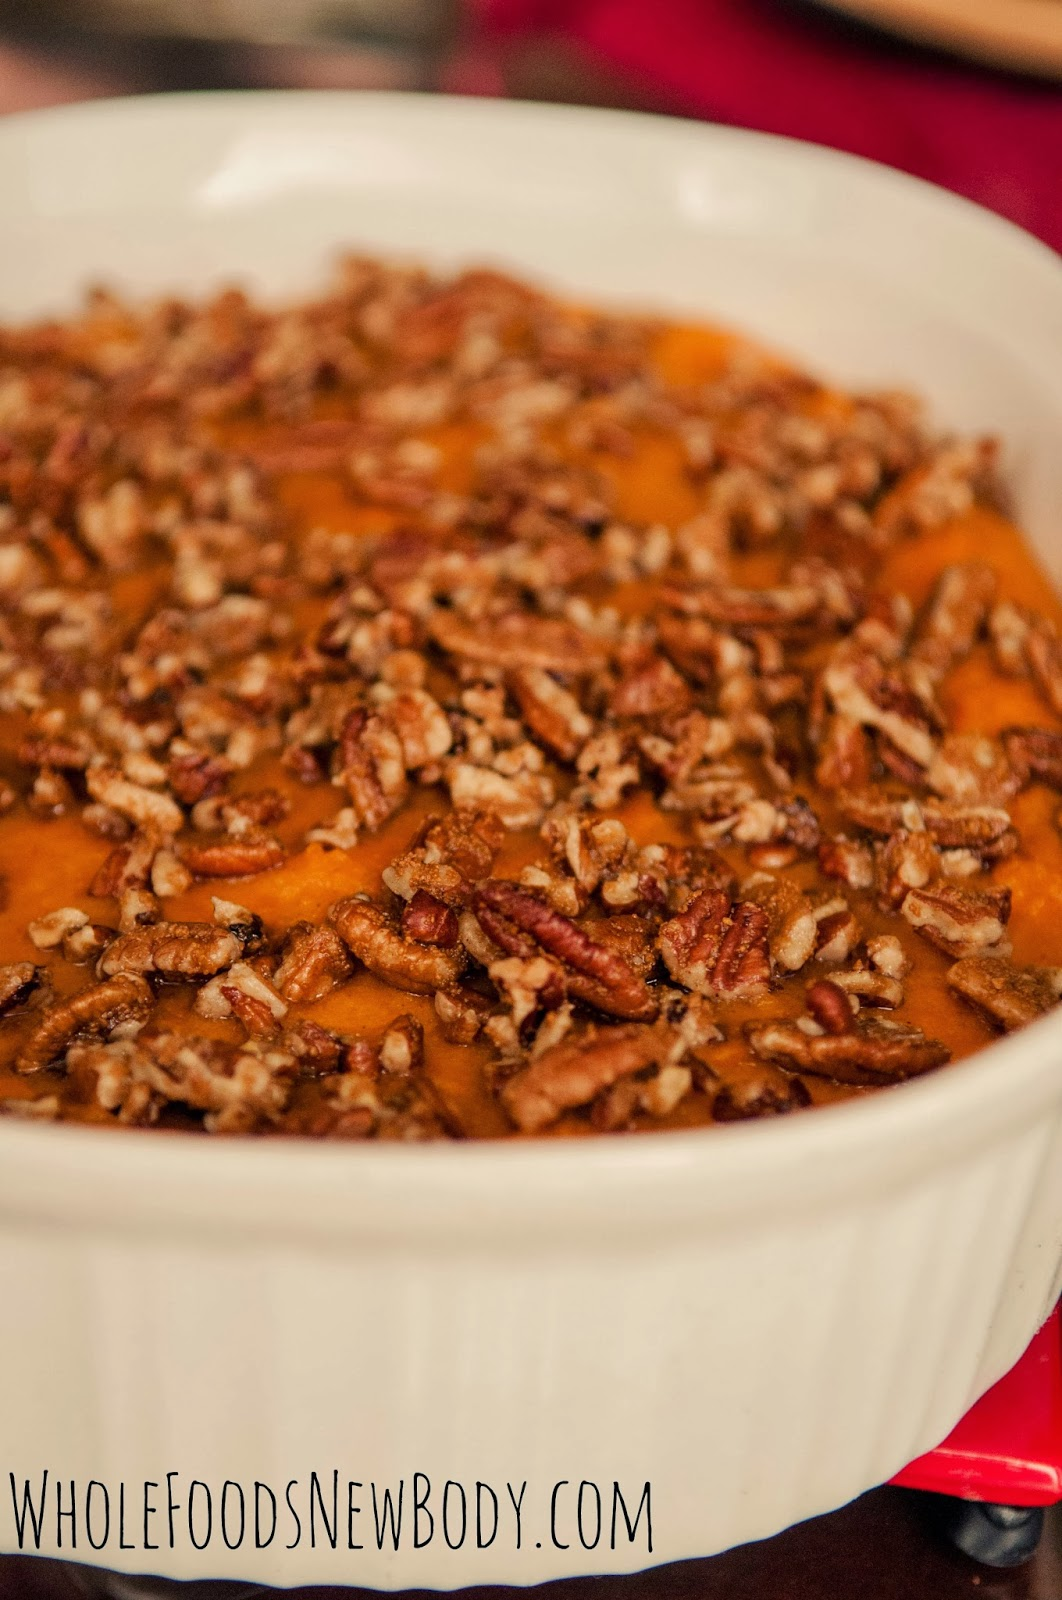 Whole Foods New Body Clean Eating Sweet Potato Souffle